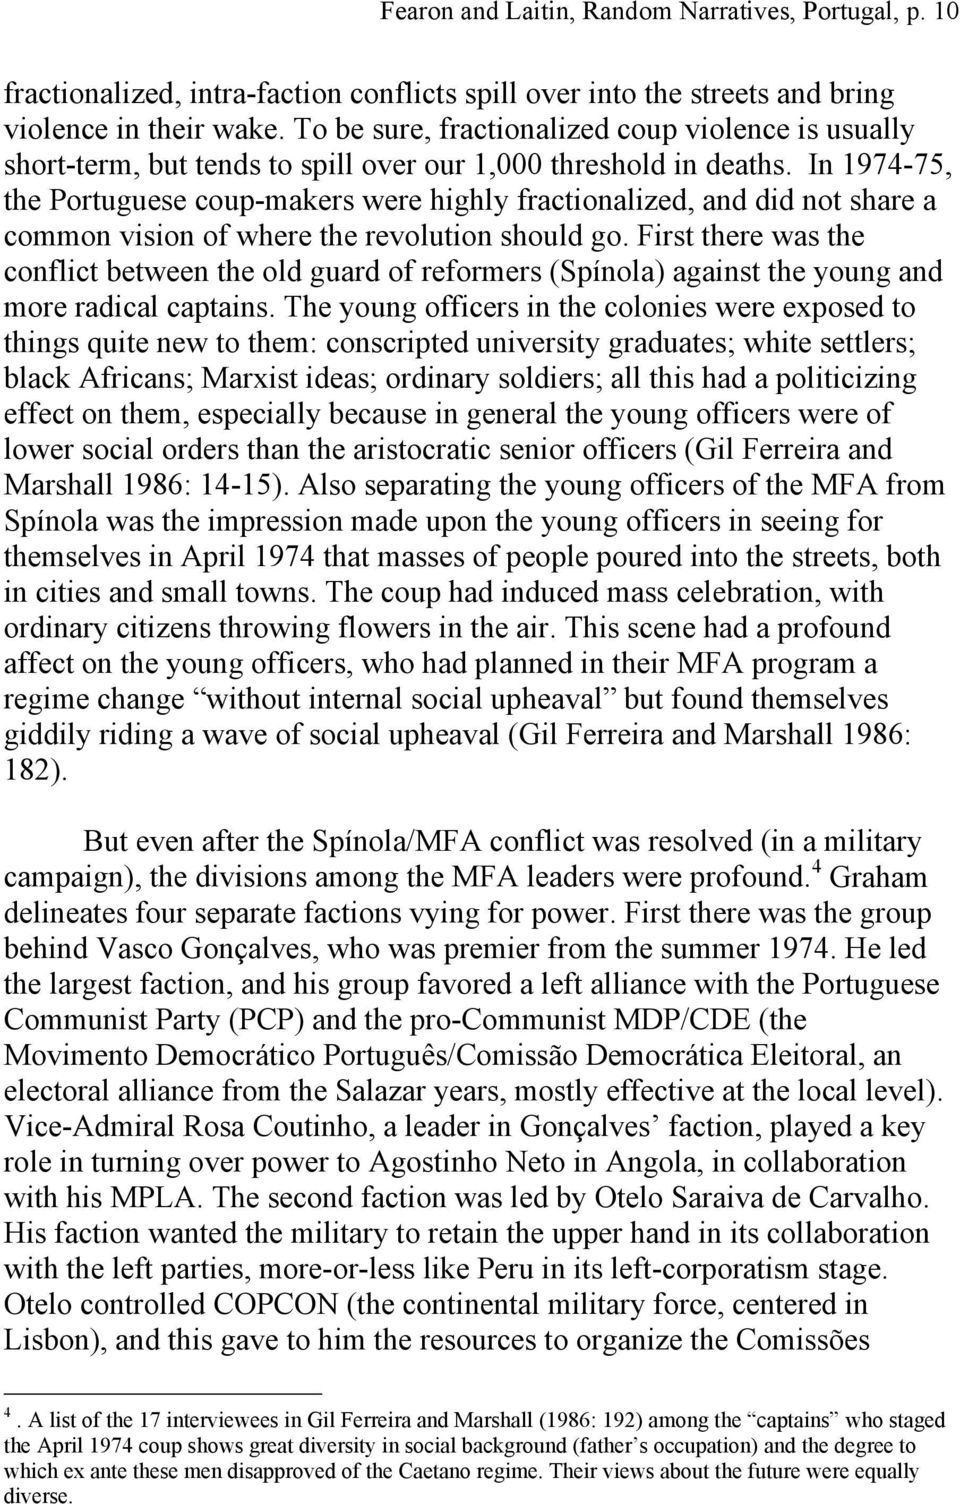 In 1974-75, the Portuguese coup-makers were highly fractionalized, and did not share a common vision of where the revolution should go.